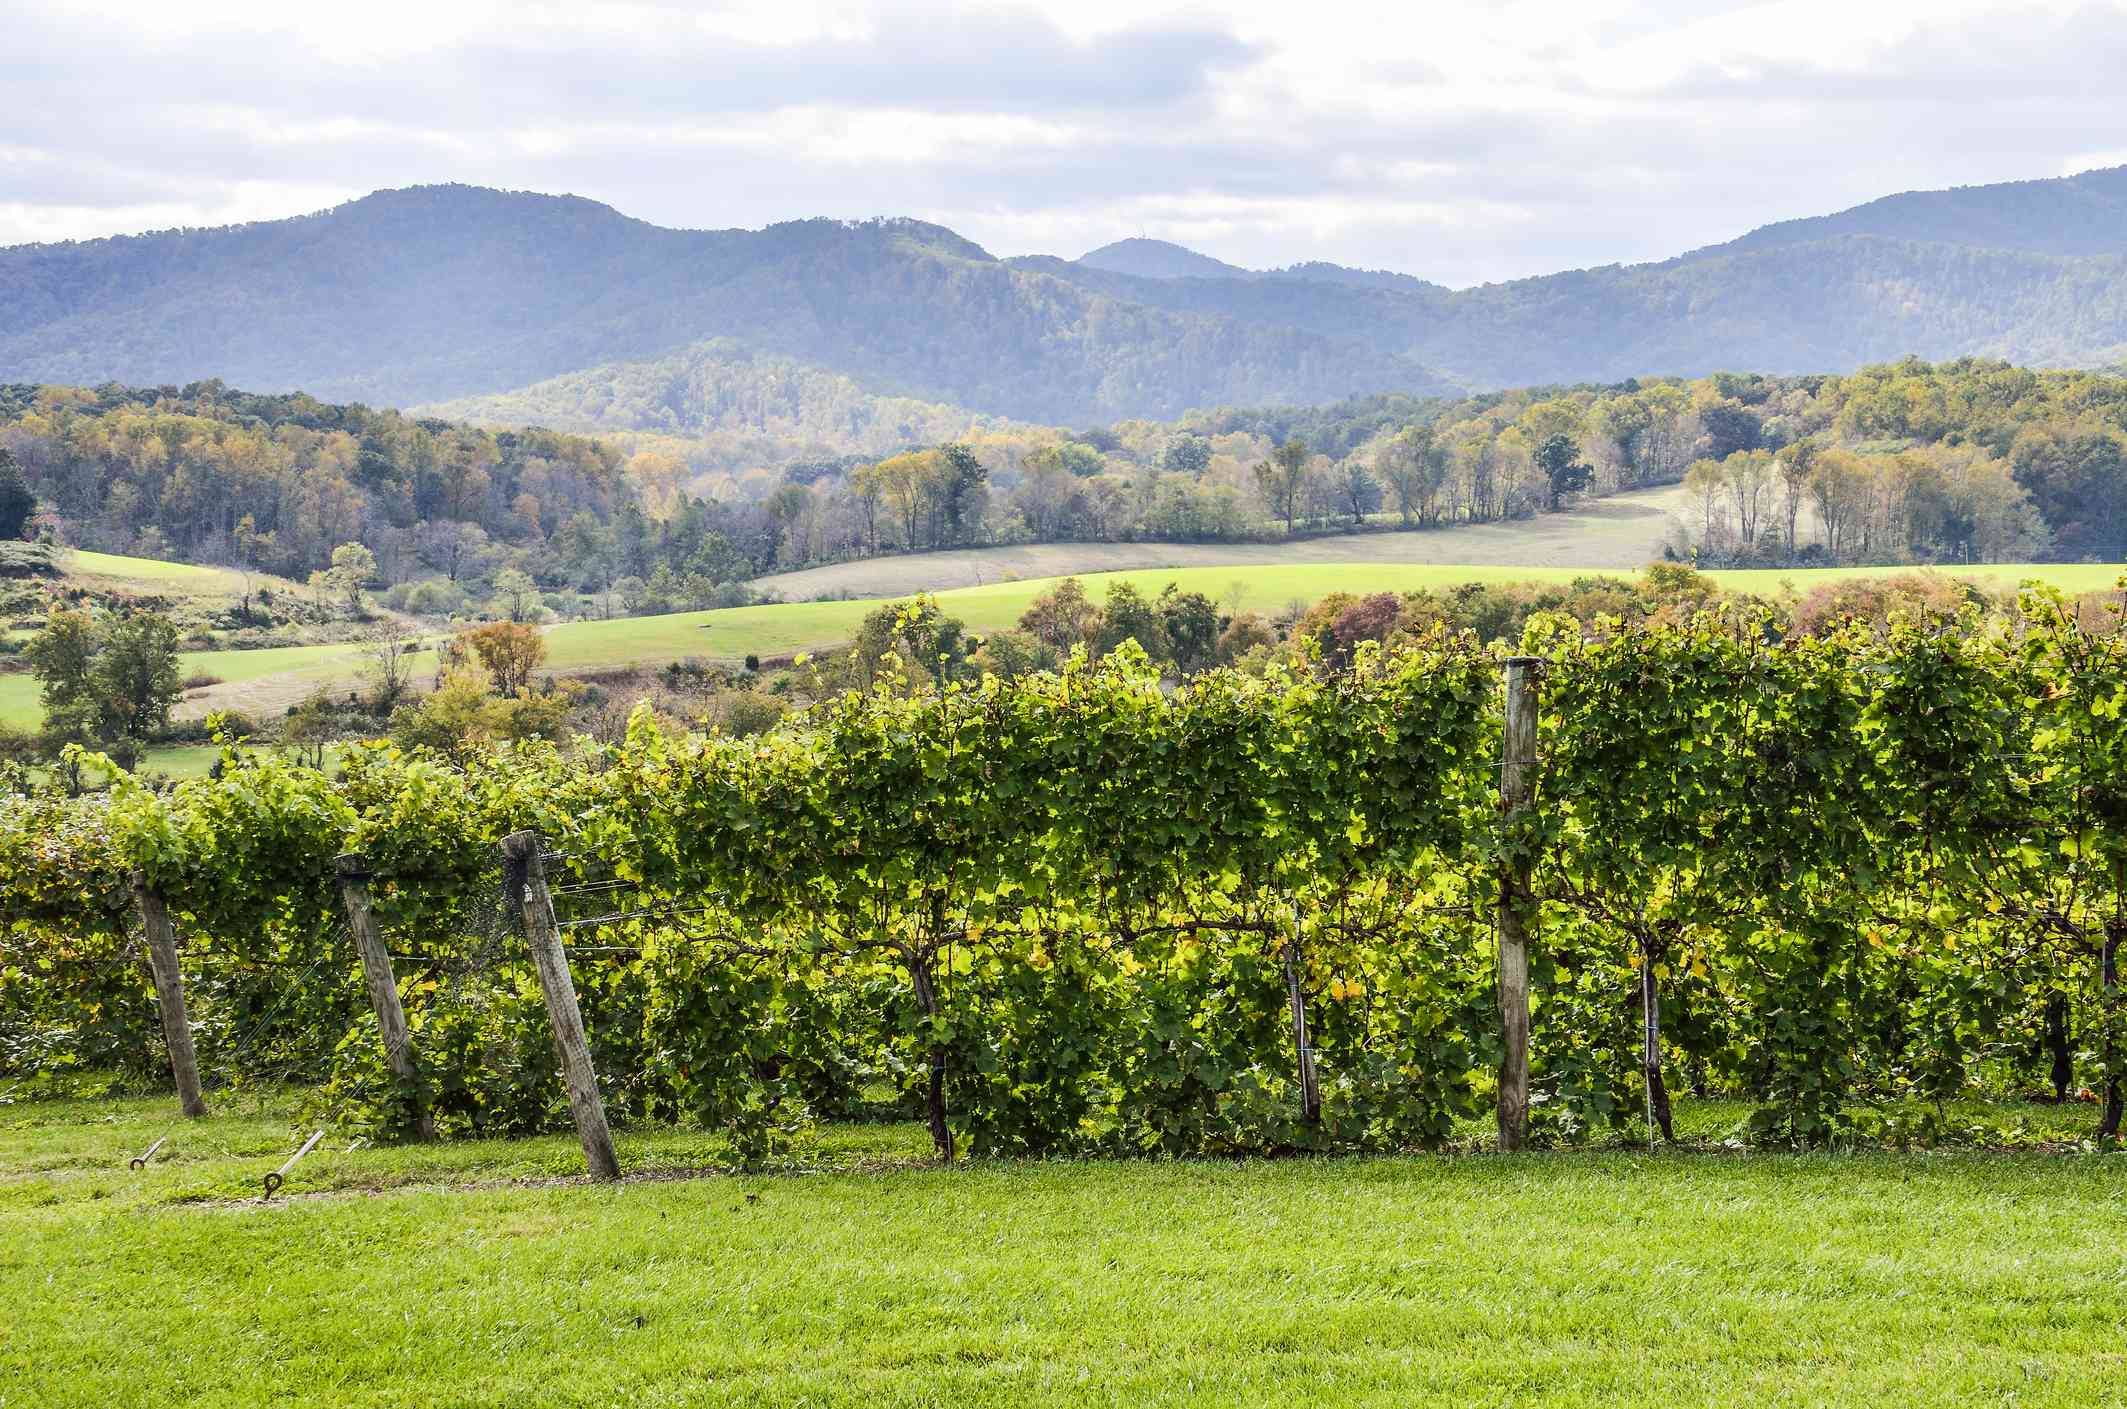 Vineyard hills in Virginia during Autumn with yellow trees